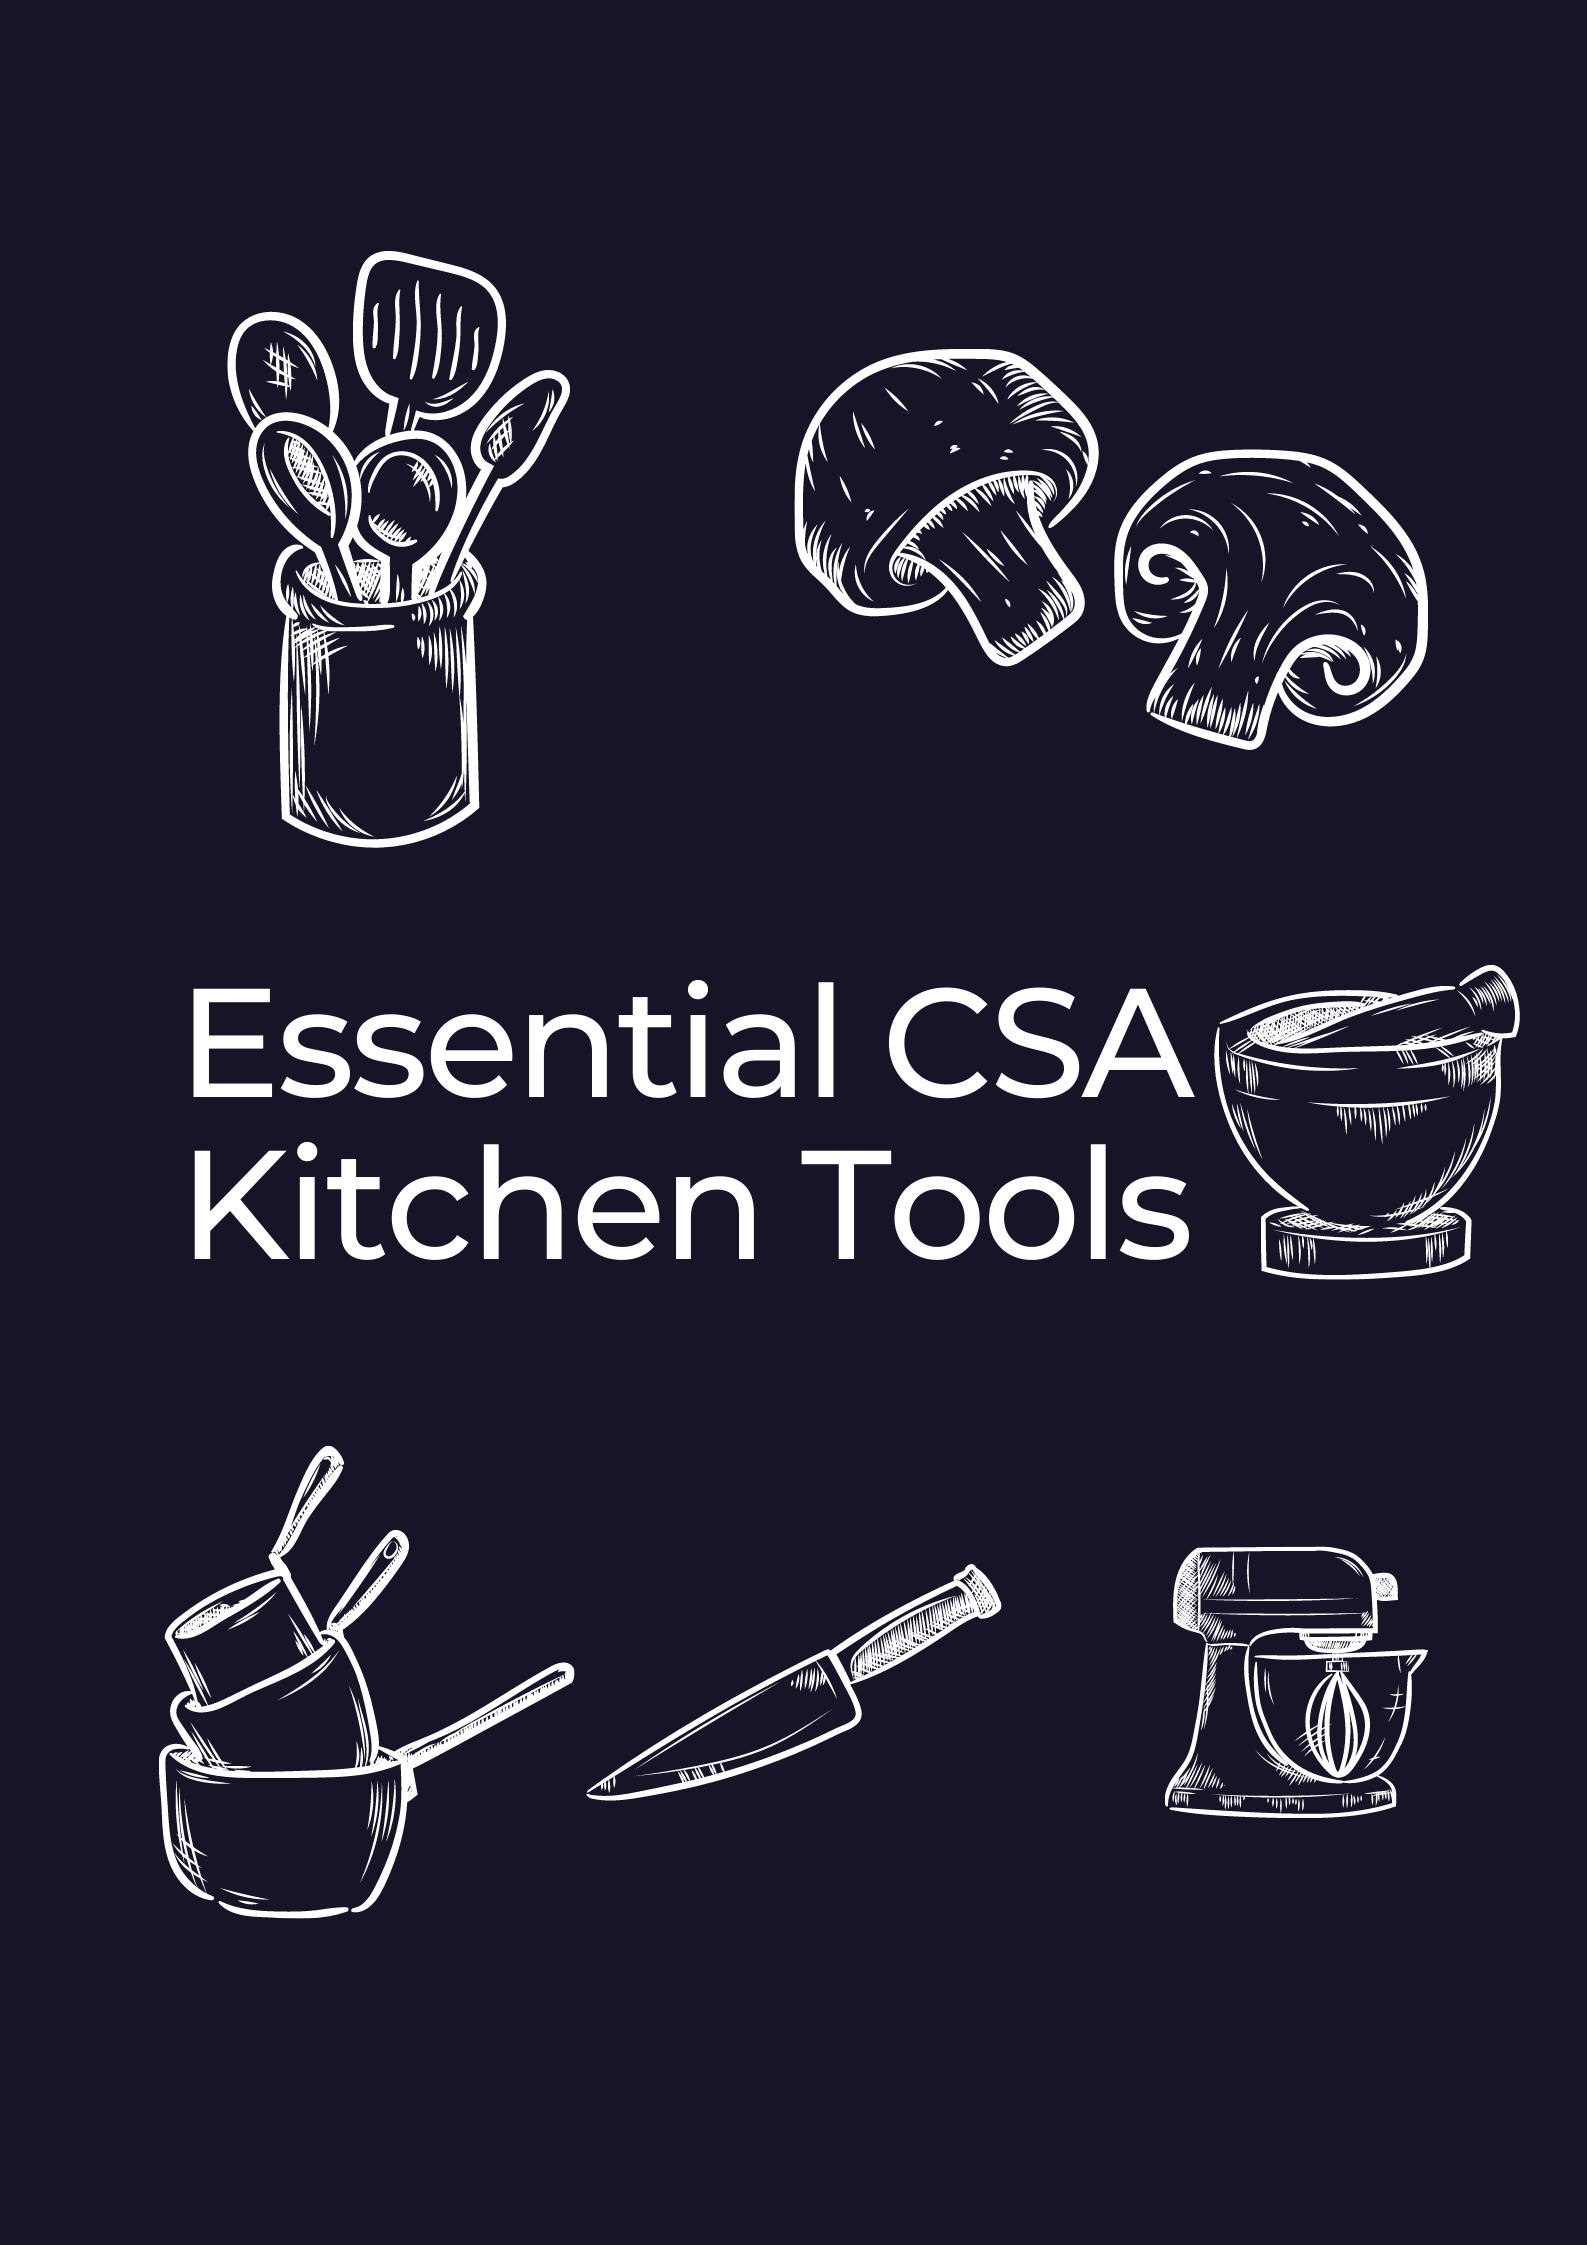 Blue and white background for essential kitchen tools from Barr Farms near me